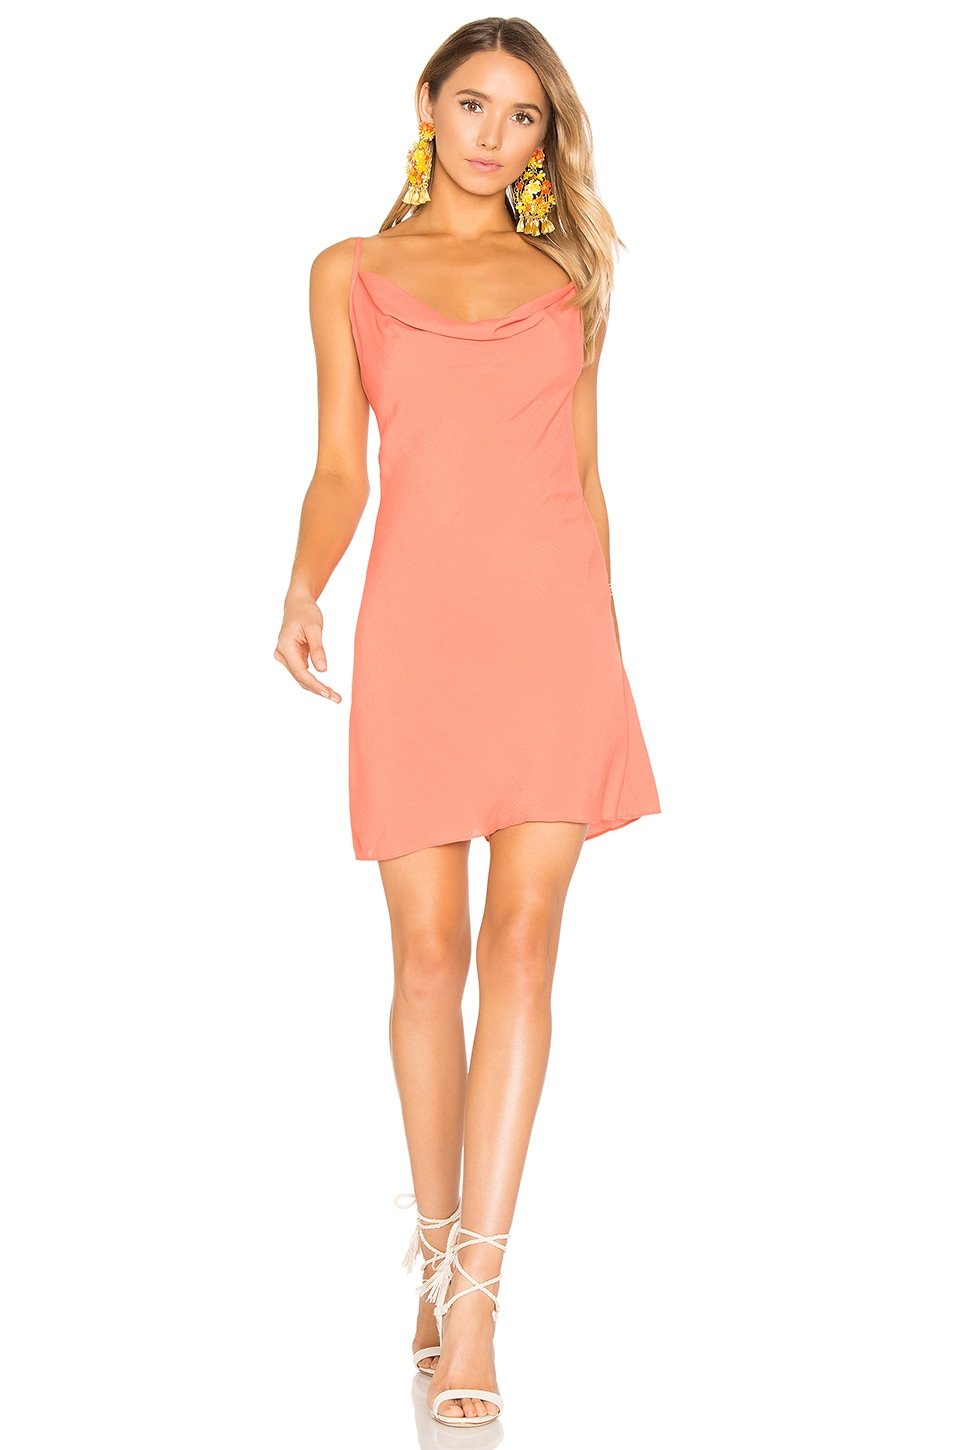 Privacy Please Ozark Dress in Peach